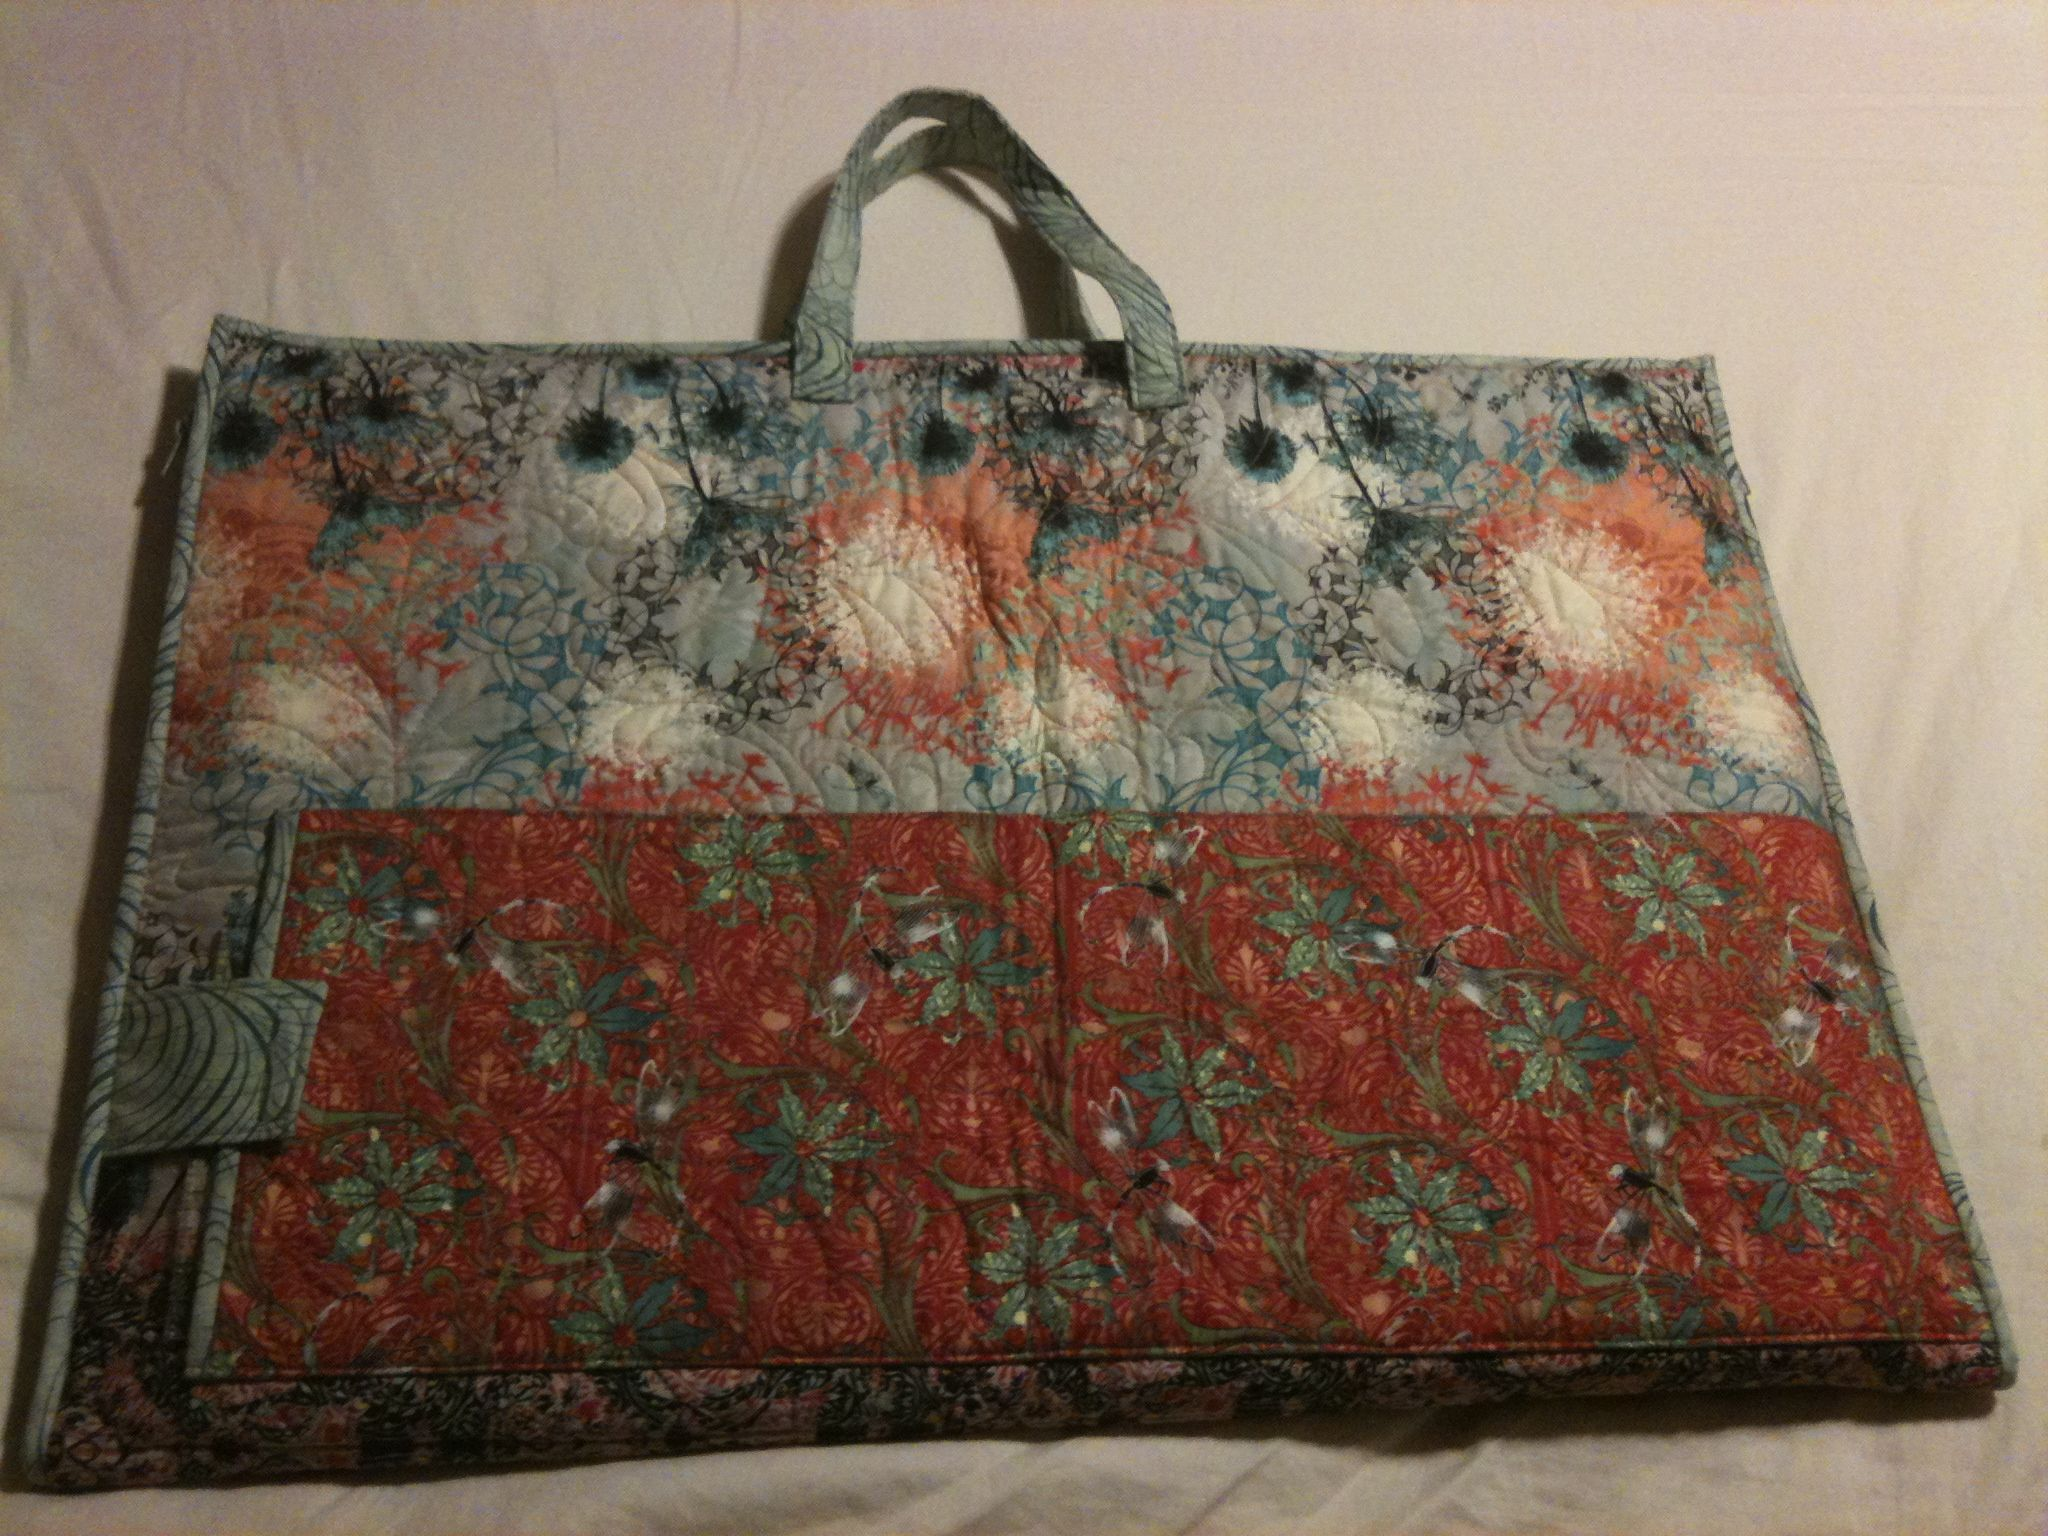 Quilting Retreat Tote | Quilting Tips and Tutorials | Pinterest ... : quilting tote - Adamdwight.com